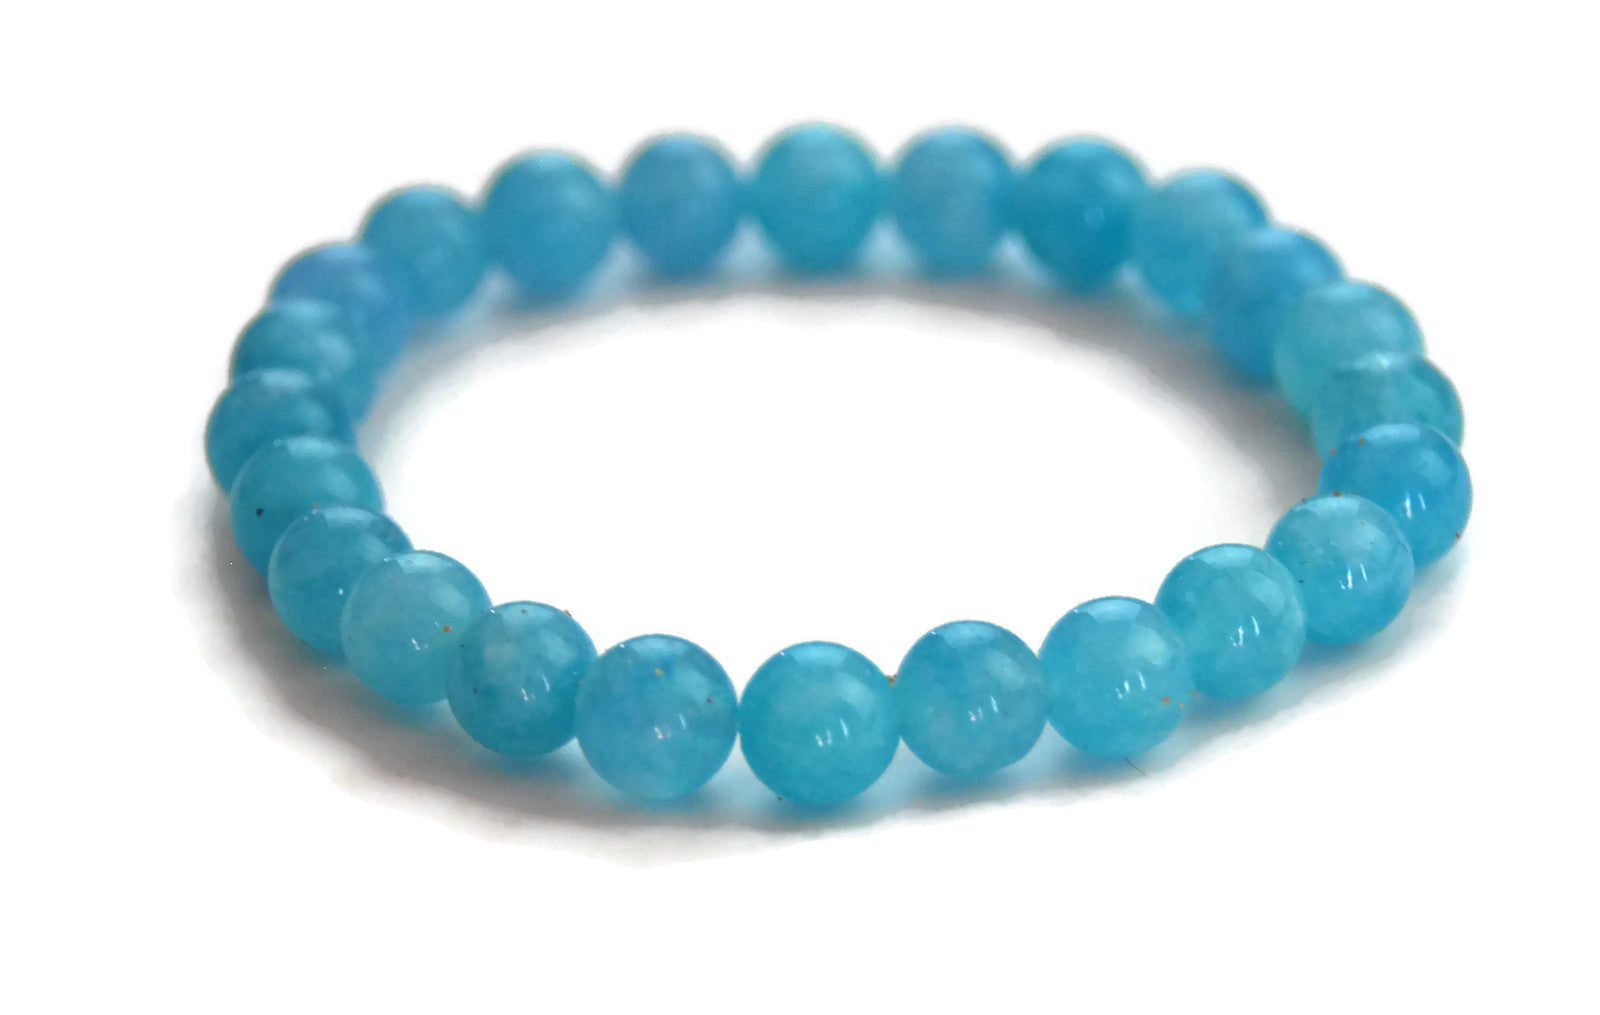 Lotus Line Aquamarine Stone Meditation Yoga Wrist Mala Stretch Bracelet, Throat Chakra